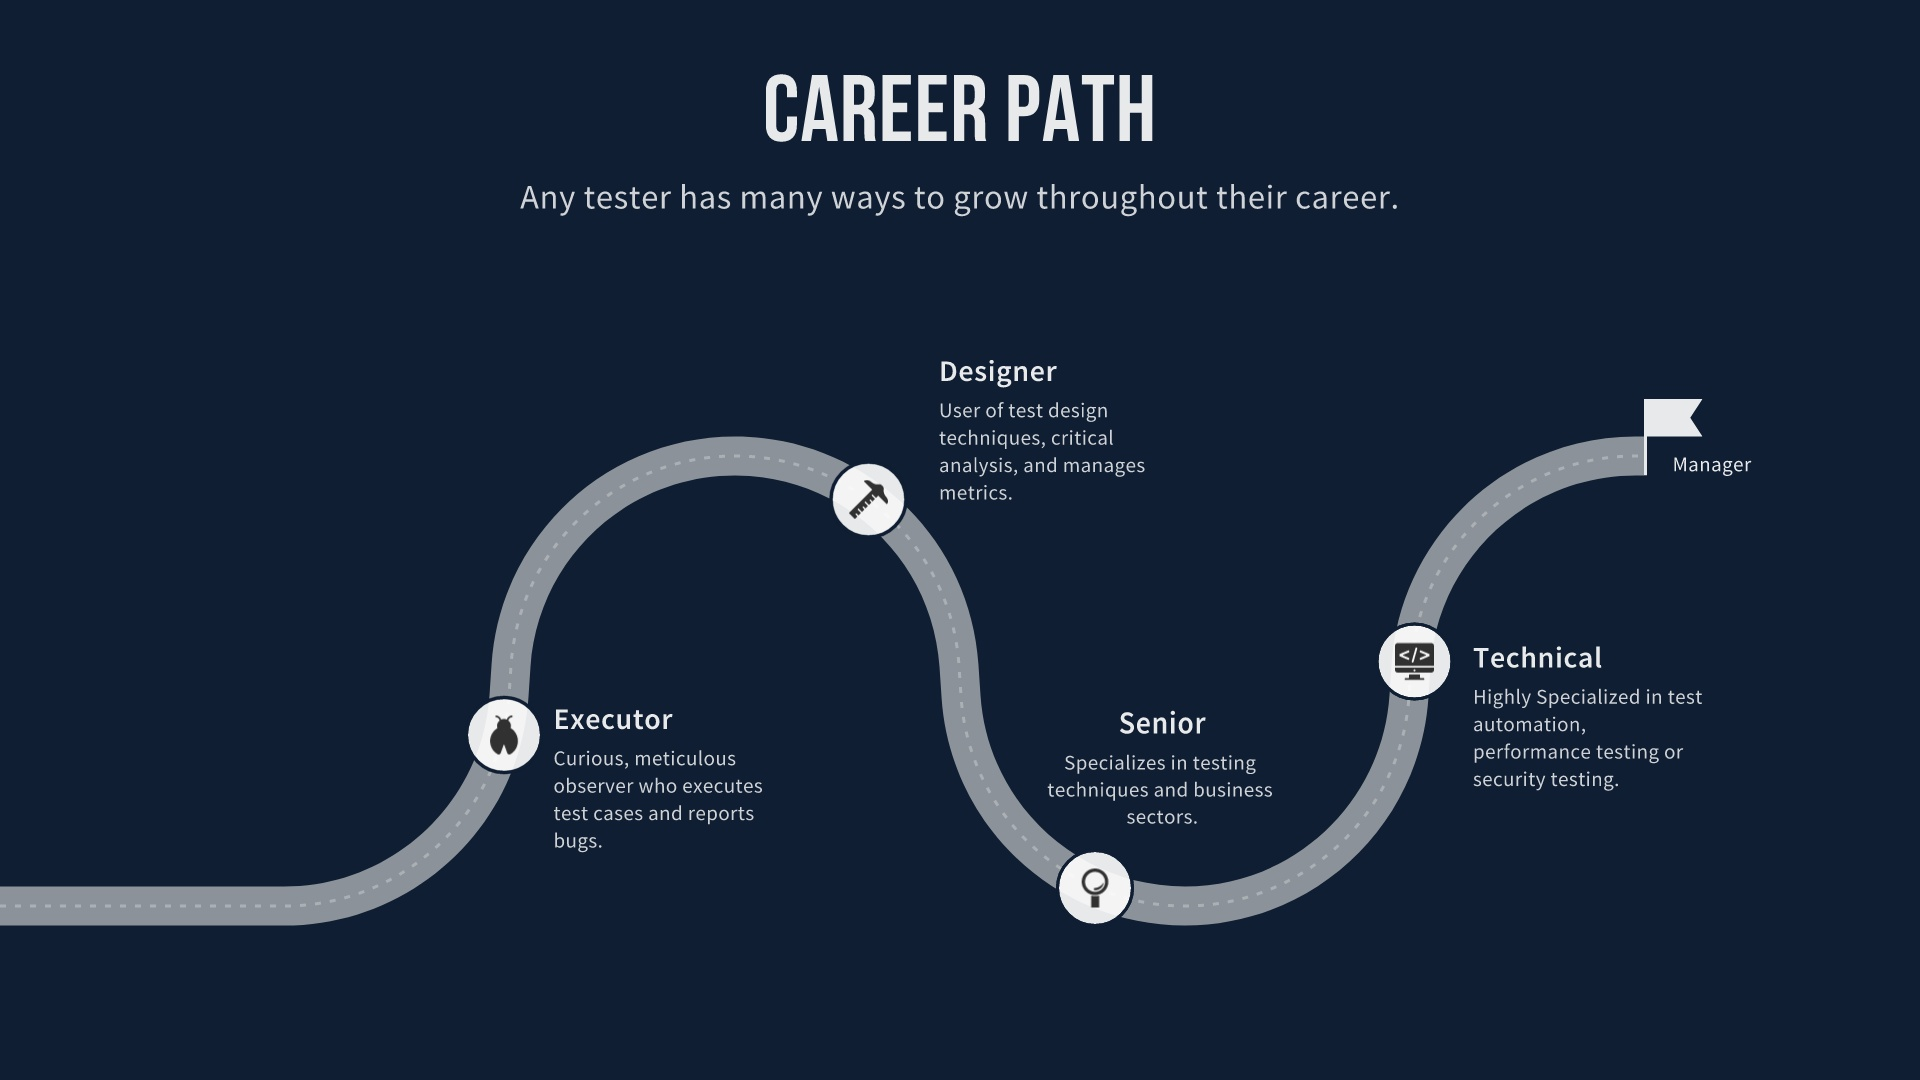 Career path journey map example